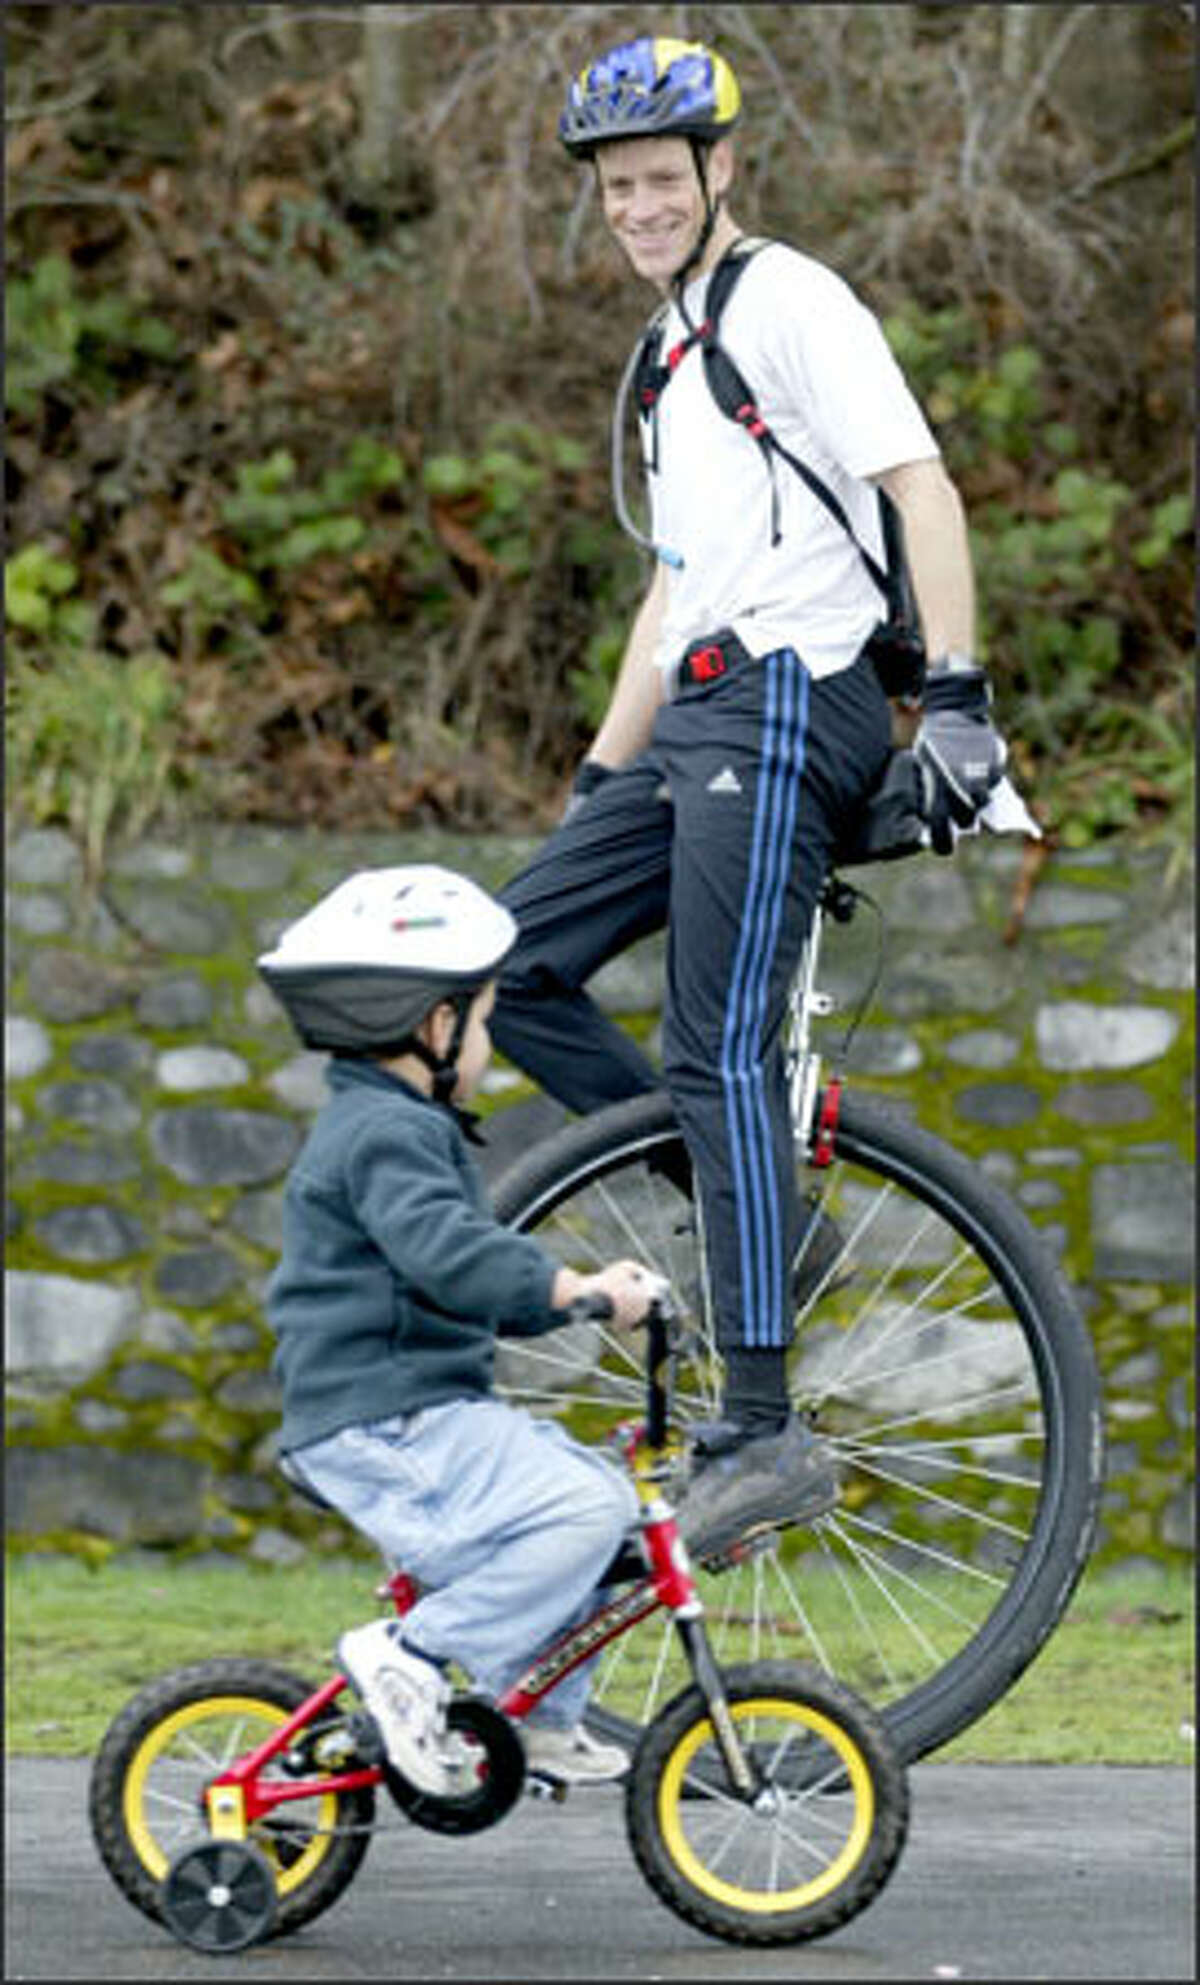 Jeff Sloan, aboard his 36-inch Coker commuting unicycle, passes 4-year-old Jackson Higuere while riding along the waterside pathway at Lincoln Park in West Seattle.